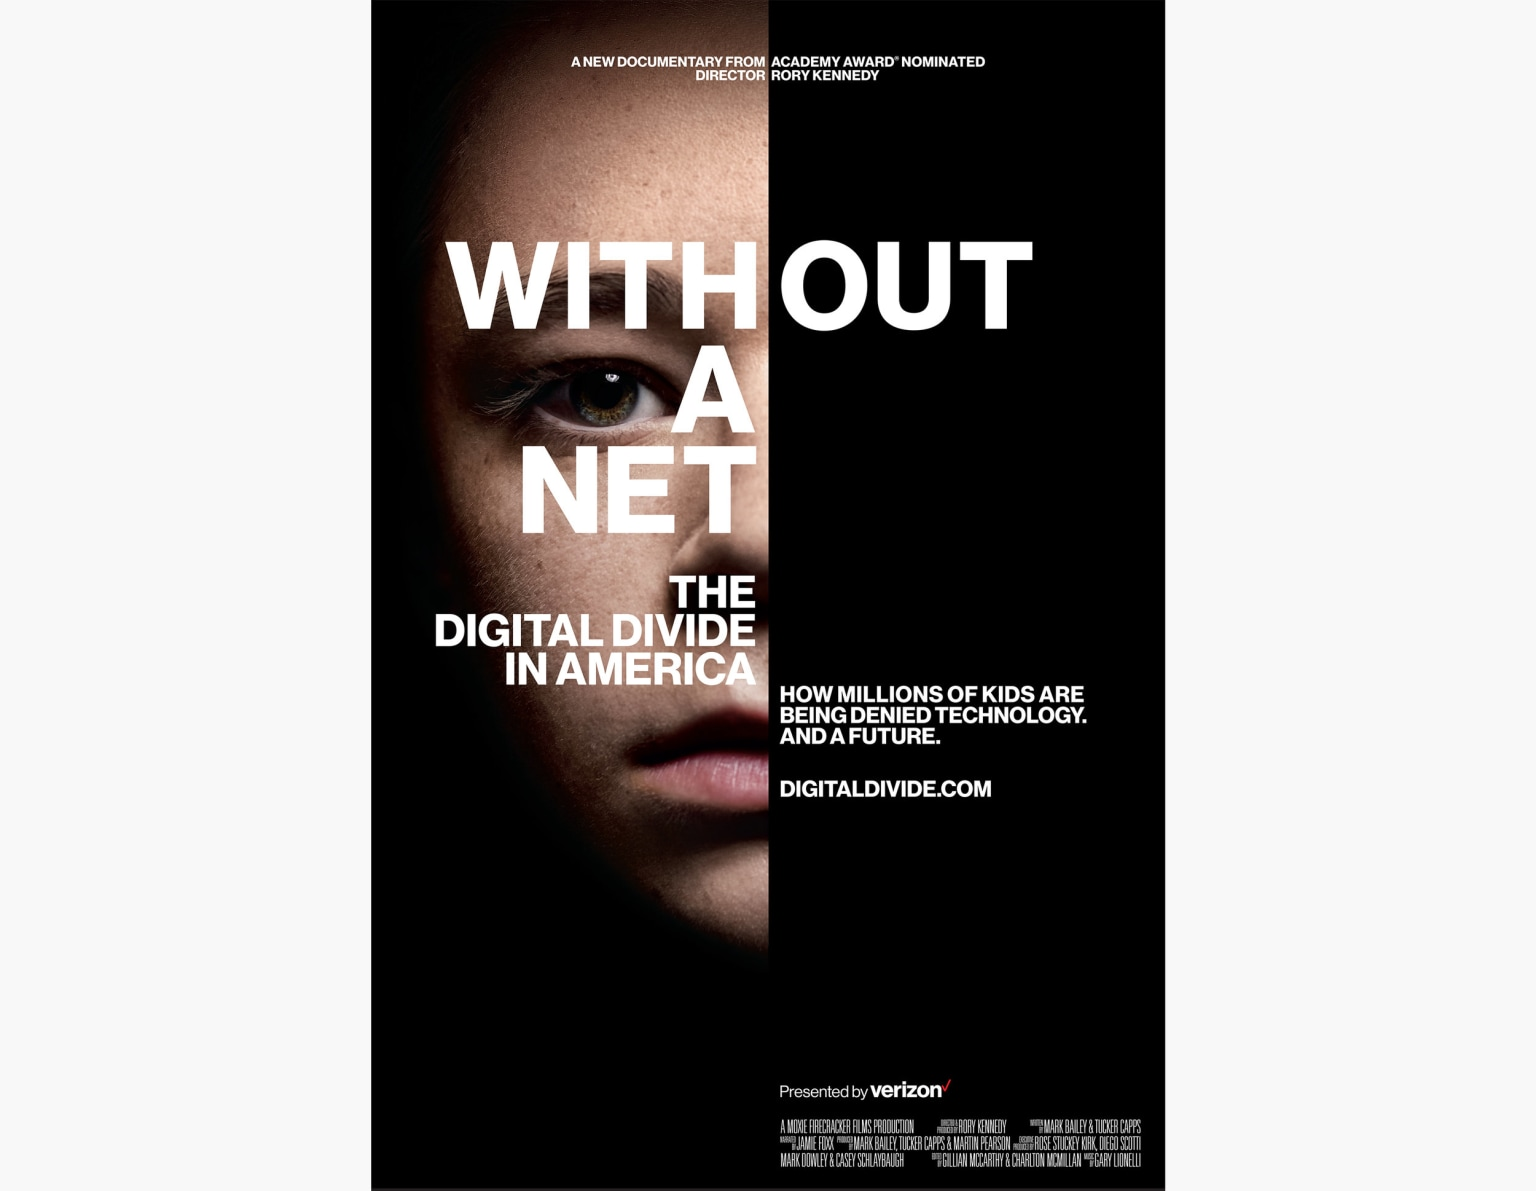 WITHOUT A NET DOCUMENTARY